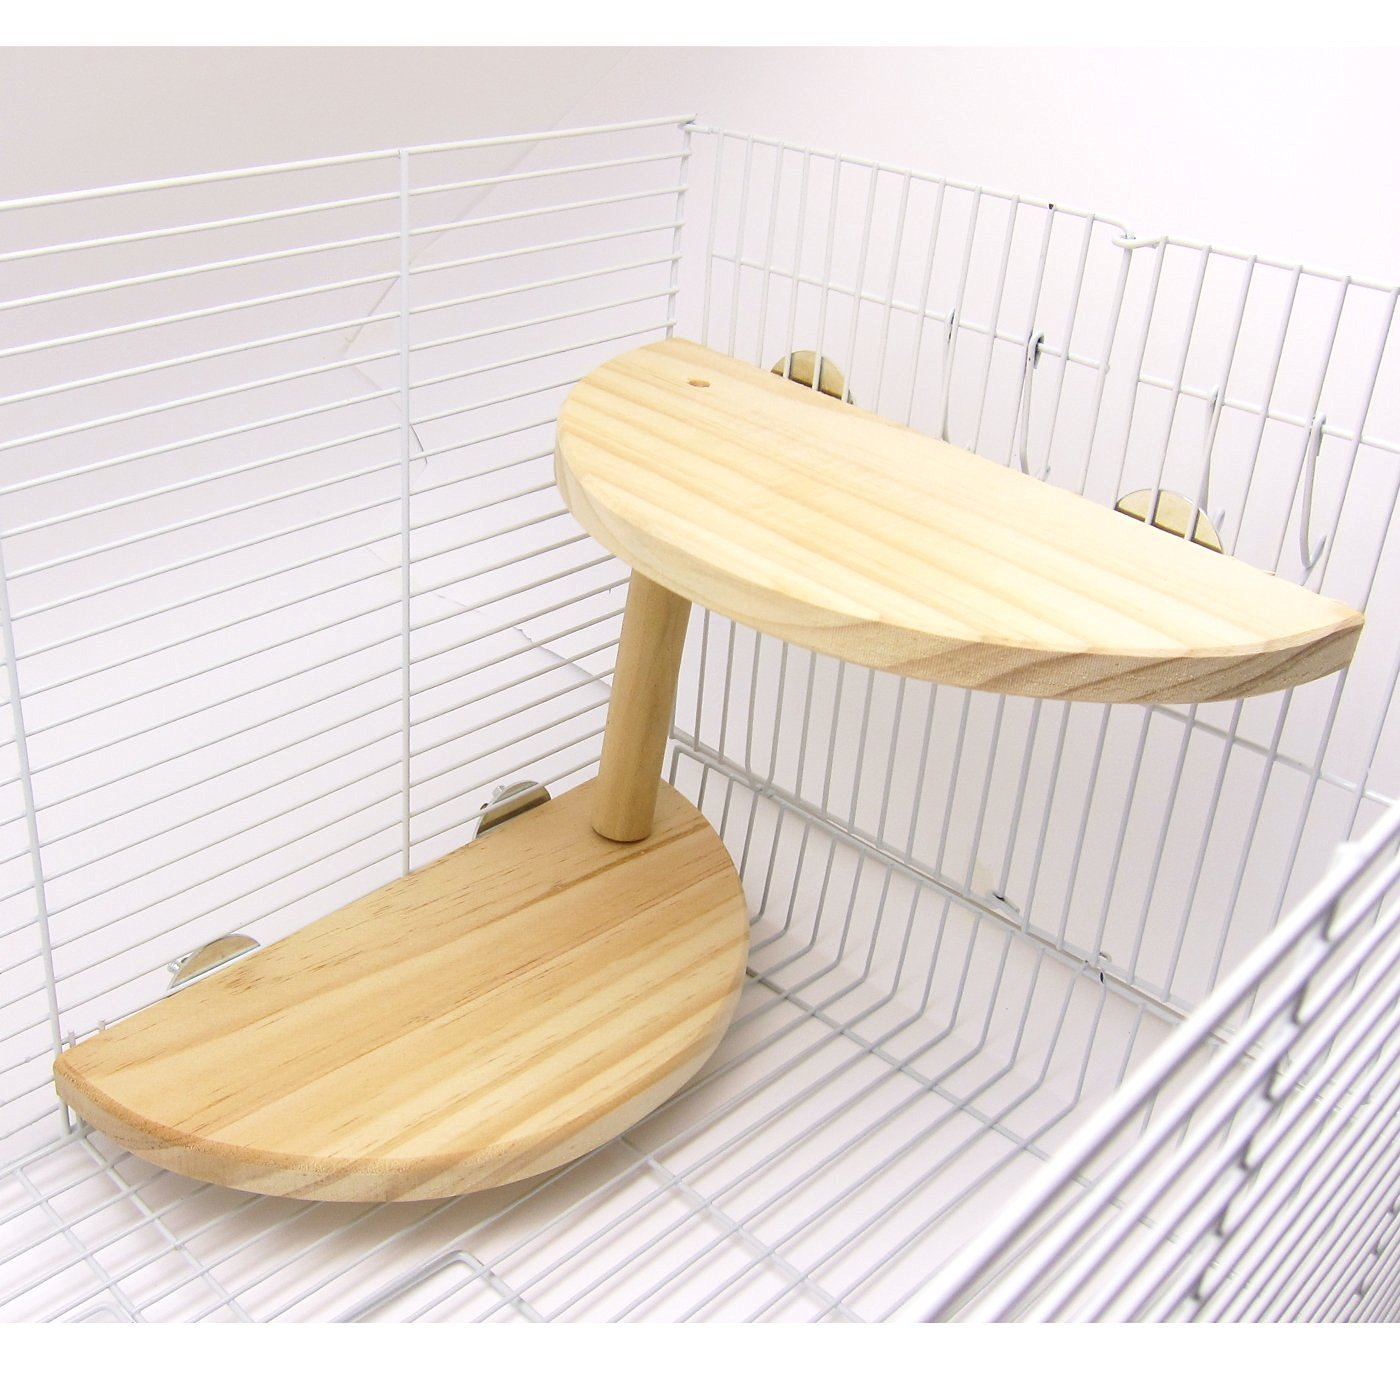 Niteangel 2-Level Wooden Platform for Chinchilla, Hamster and Other Small Animals by Niteangel